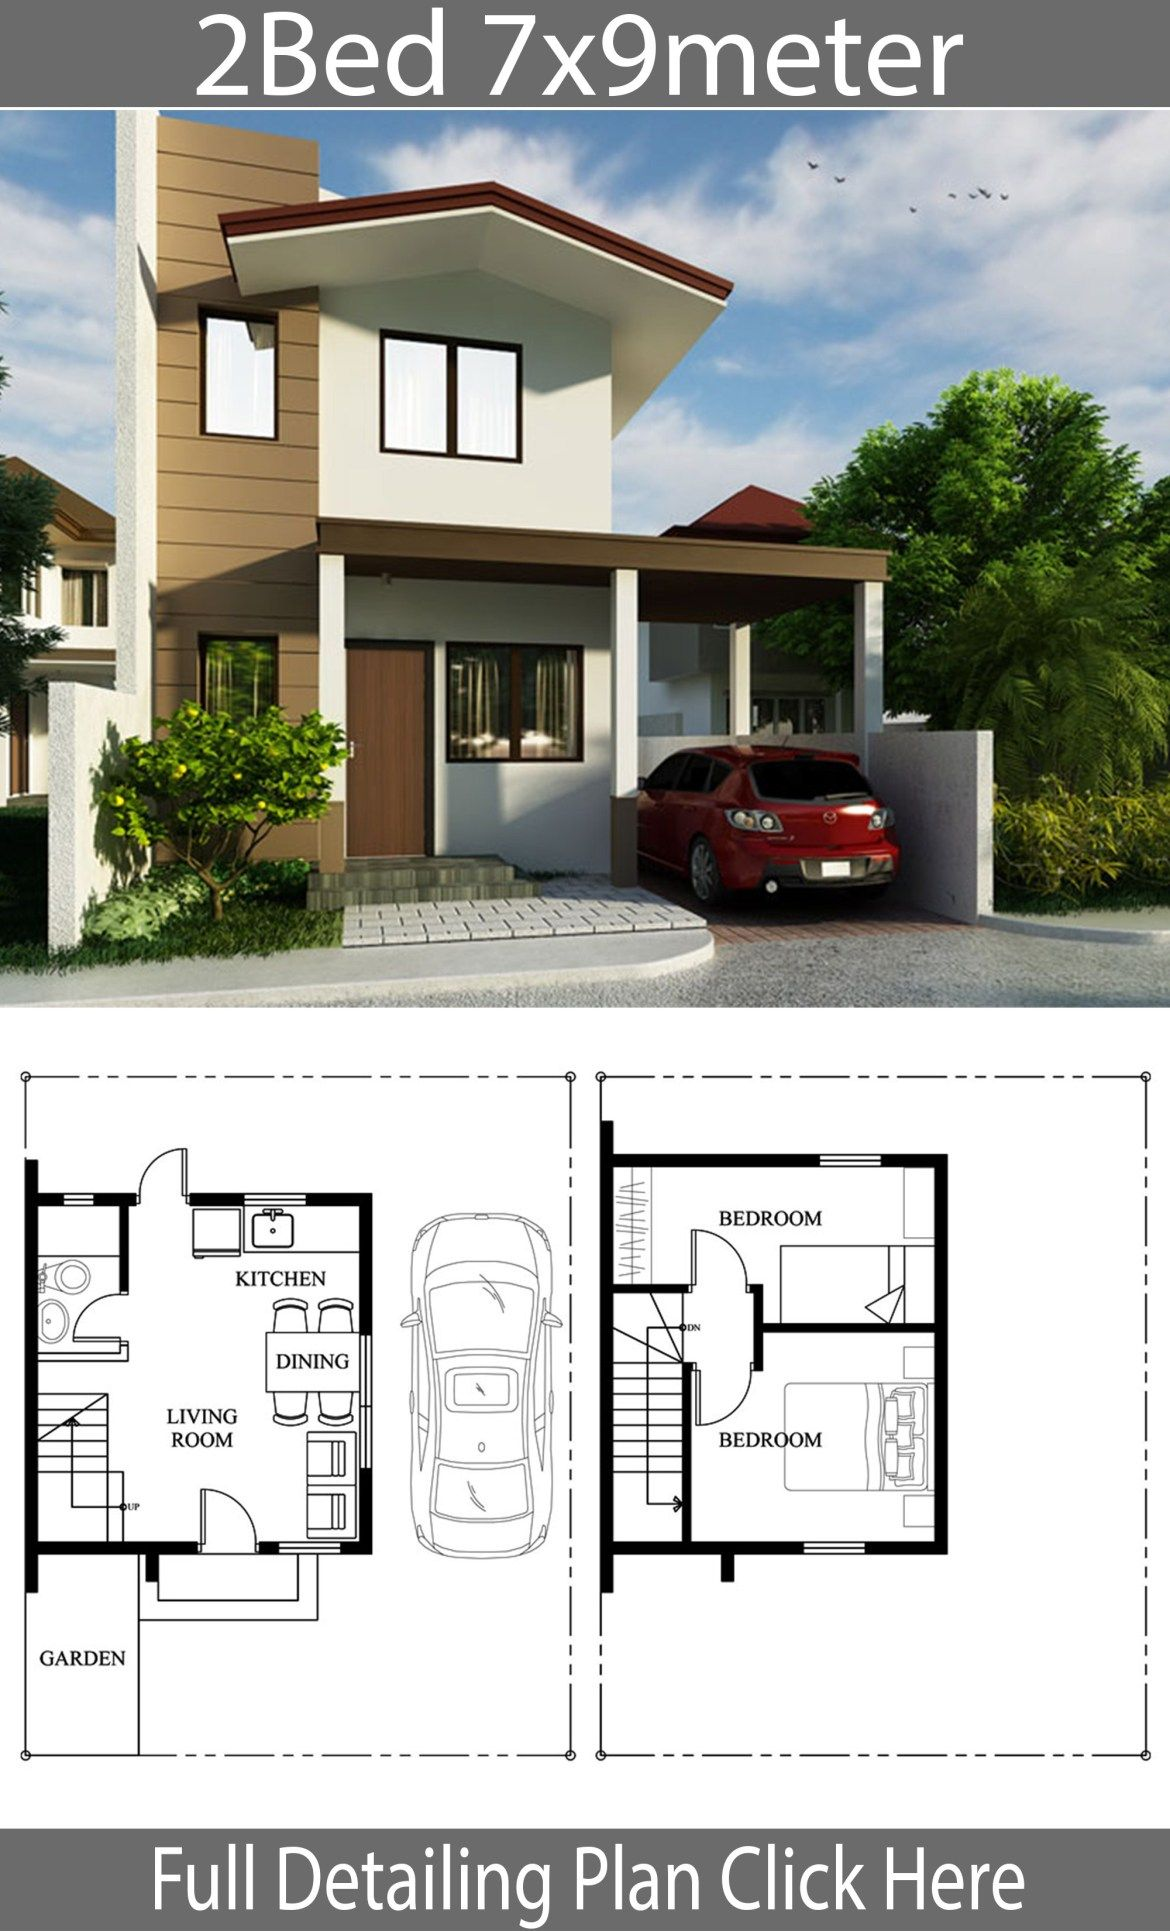 Small Home Design Plan 7x9m With 2 Bedrooms Small House Design